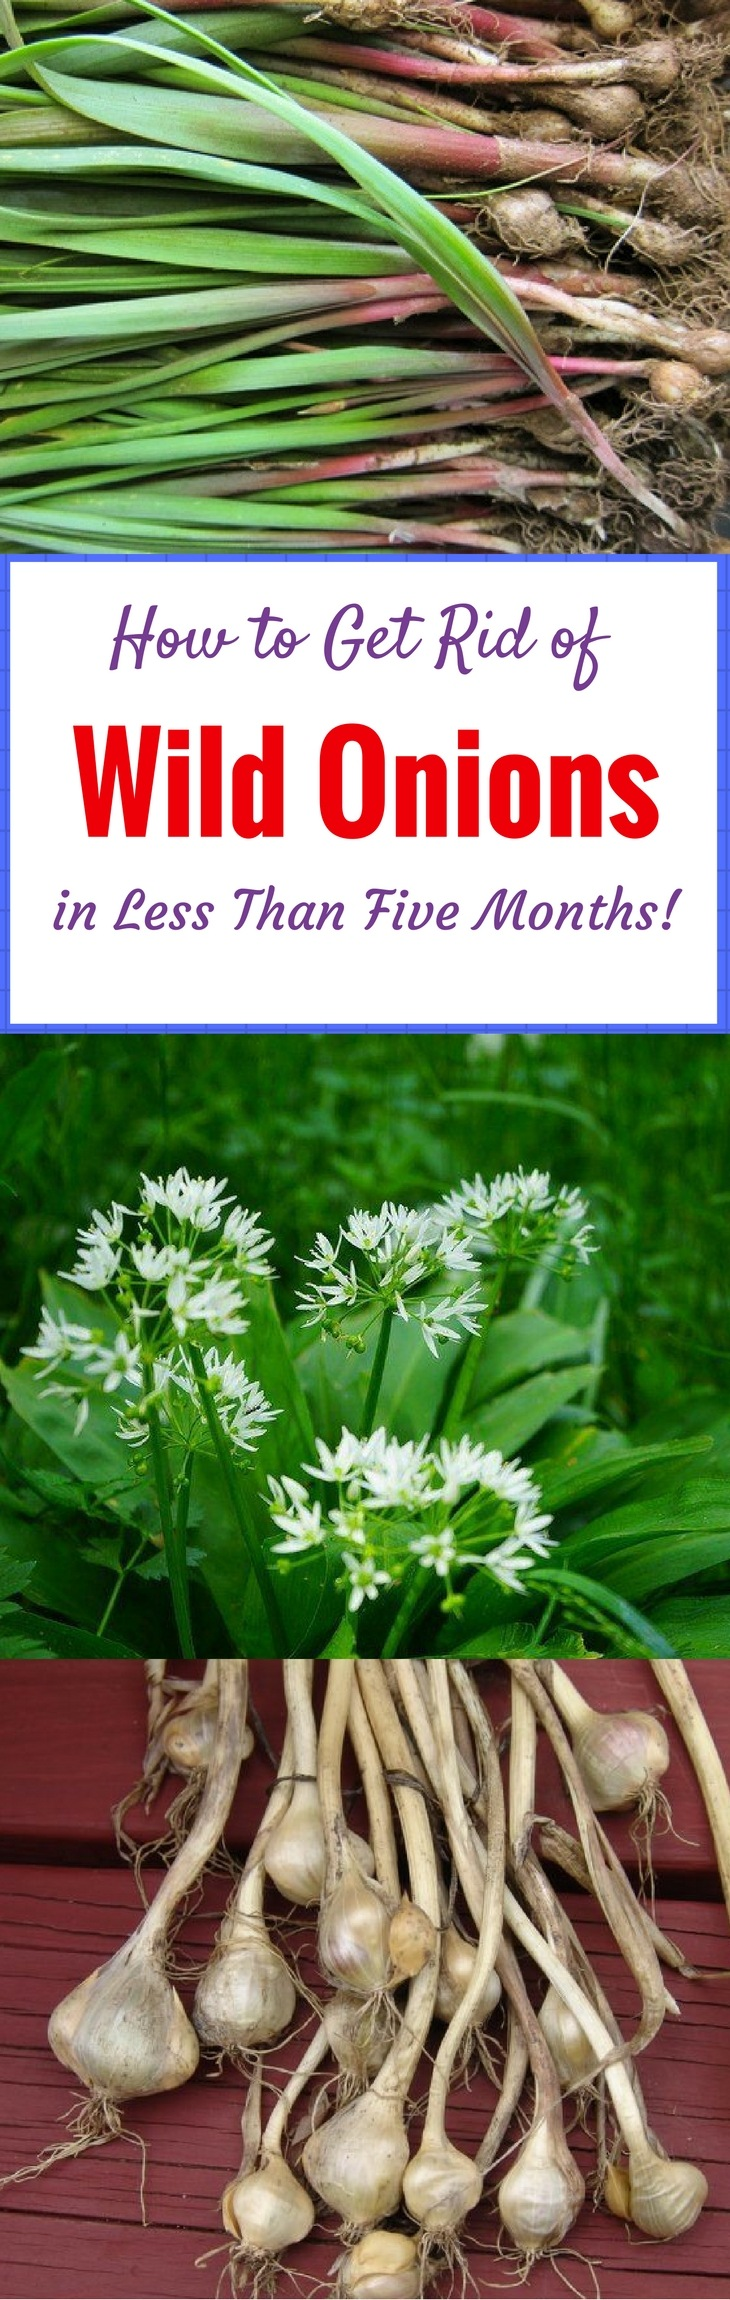 How to Get Rid of Wild Onions in Less Than Five Months!